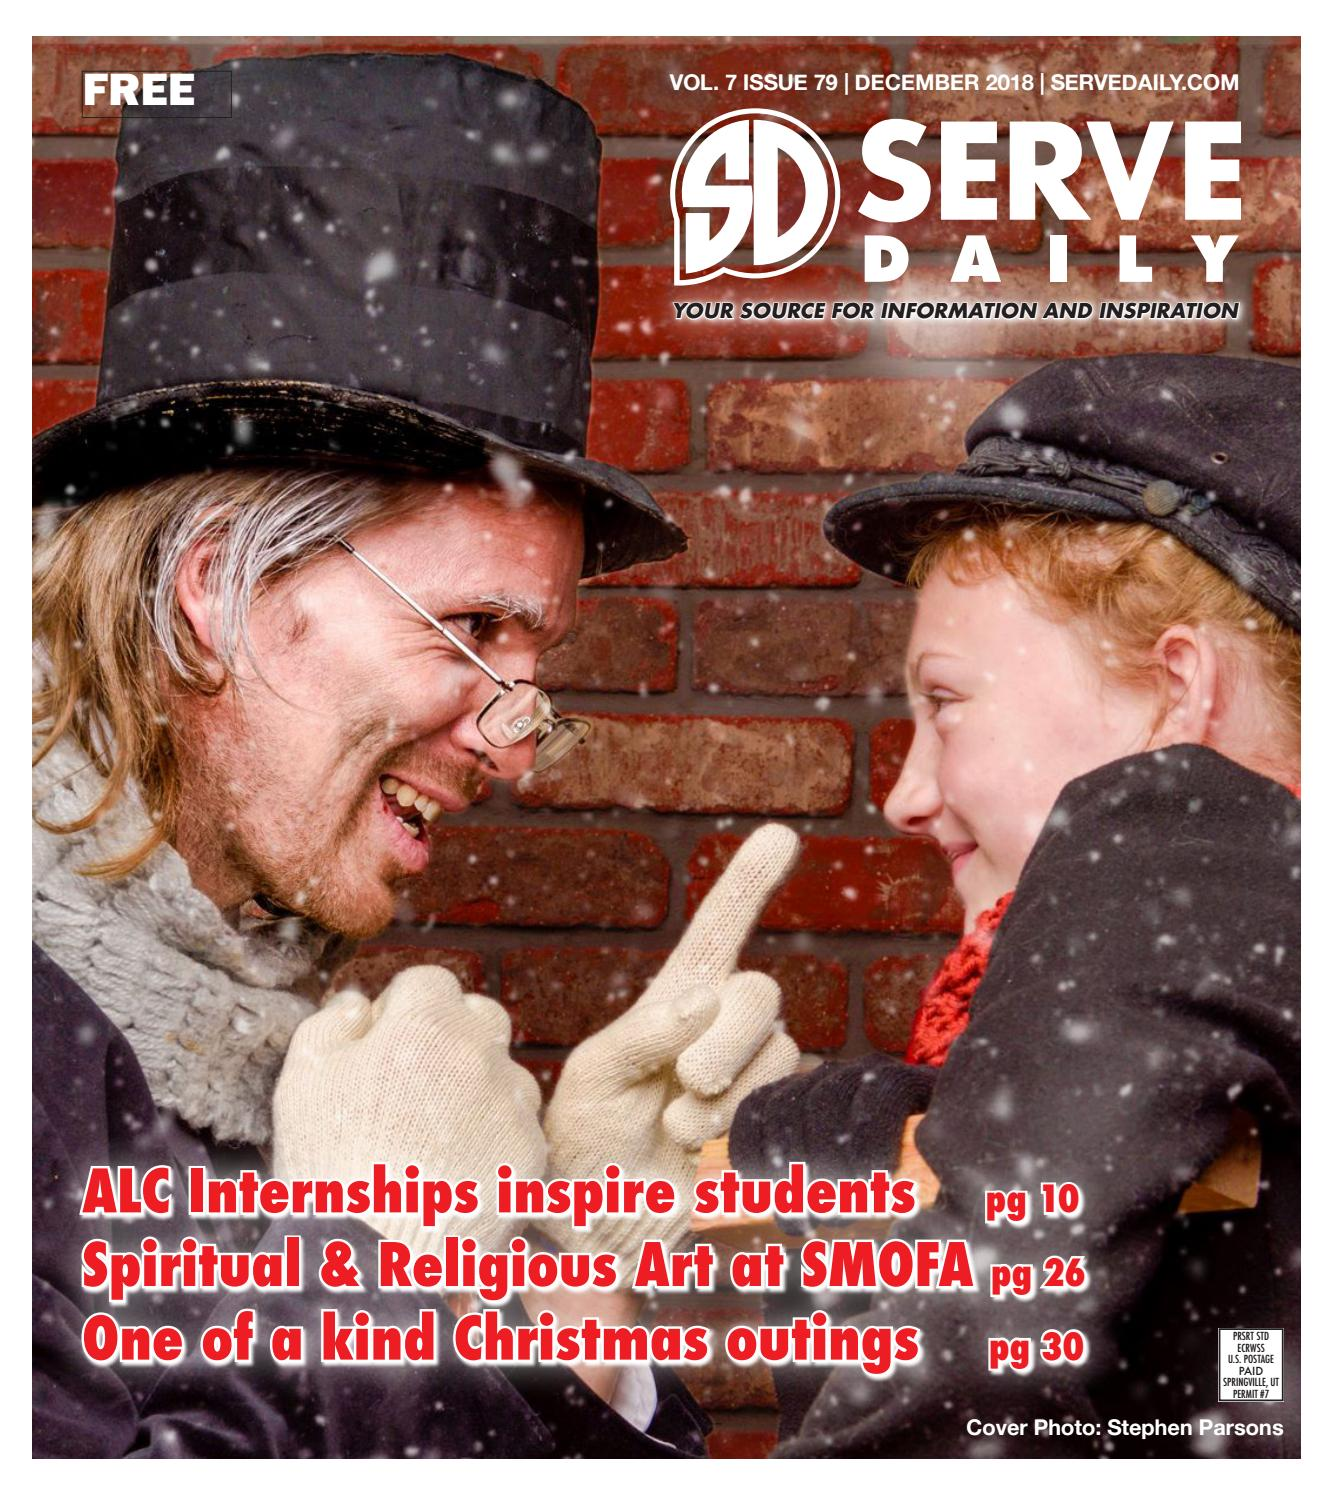 feec0e0965b Serve Daily Volume 7, Issue 79 December 2018 by Serve Daily - issuu